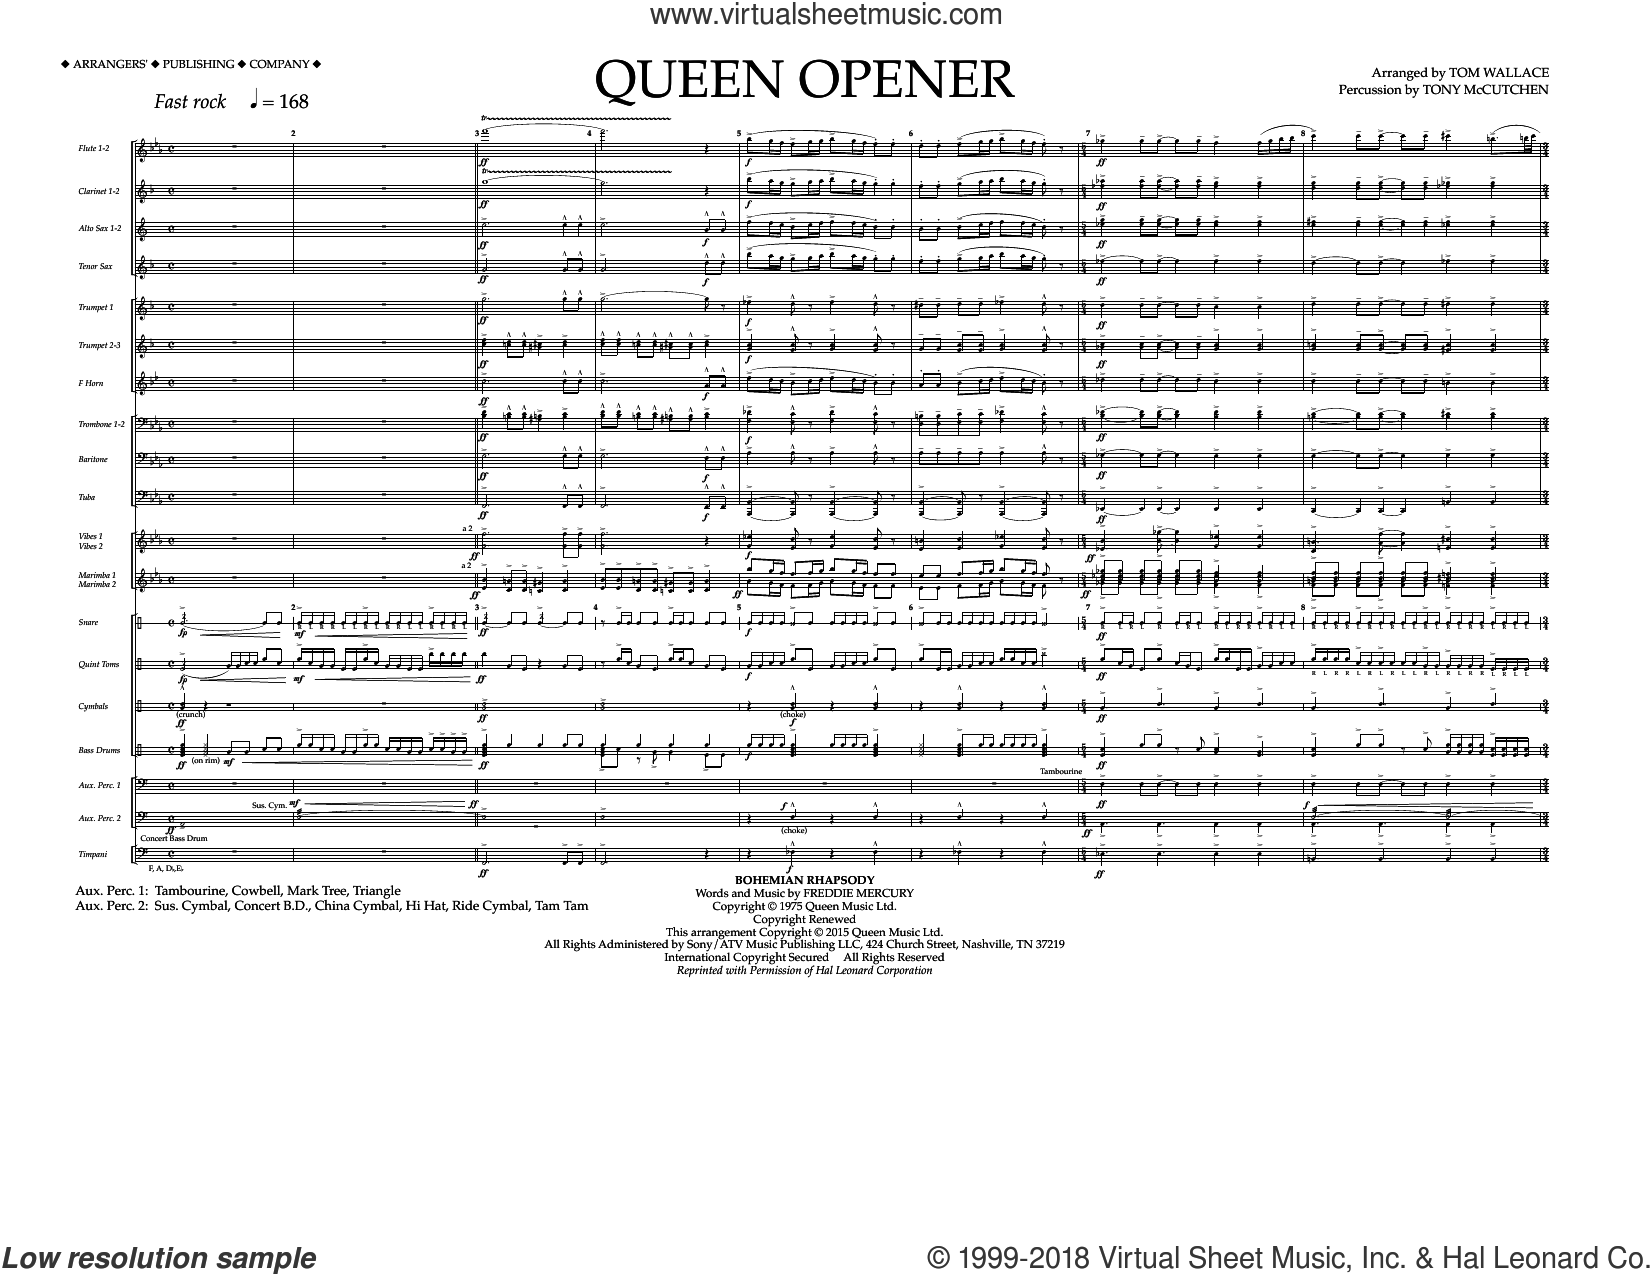 Queen Opener (COMPLETE) sheet music for marching band by Queen and Tom Wallace, intermediate